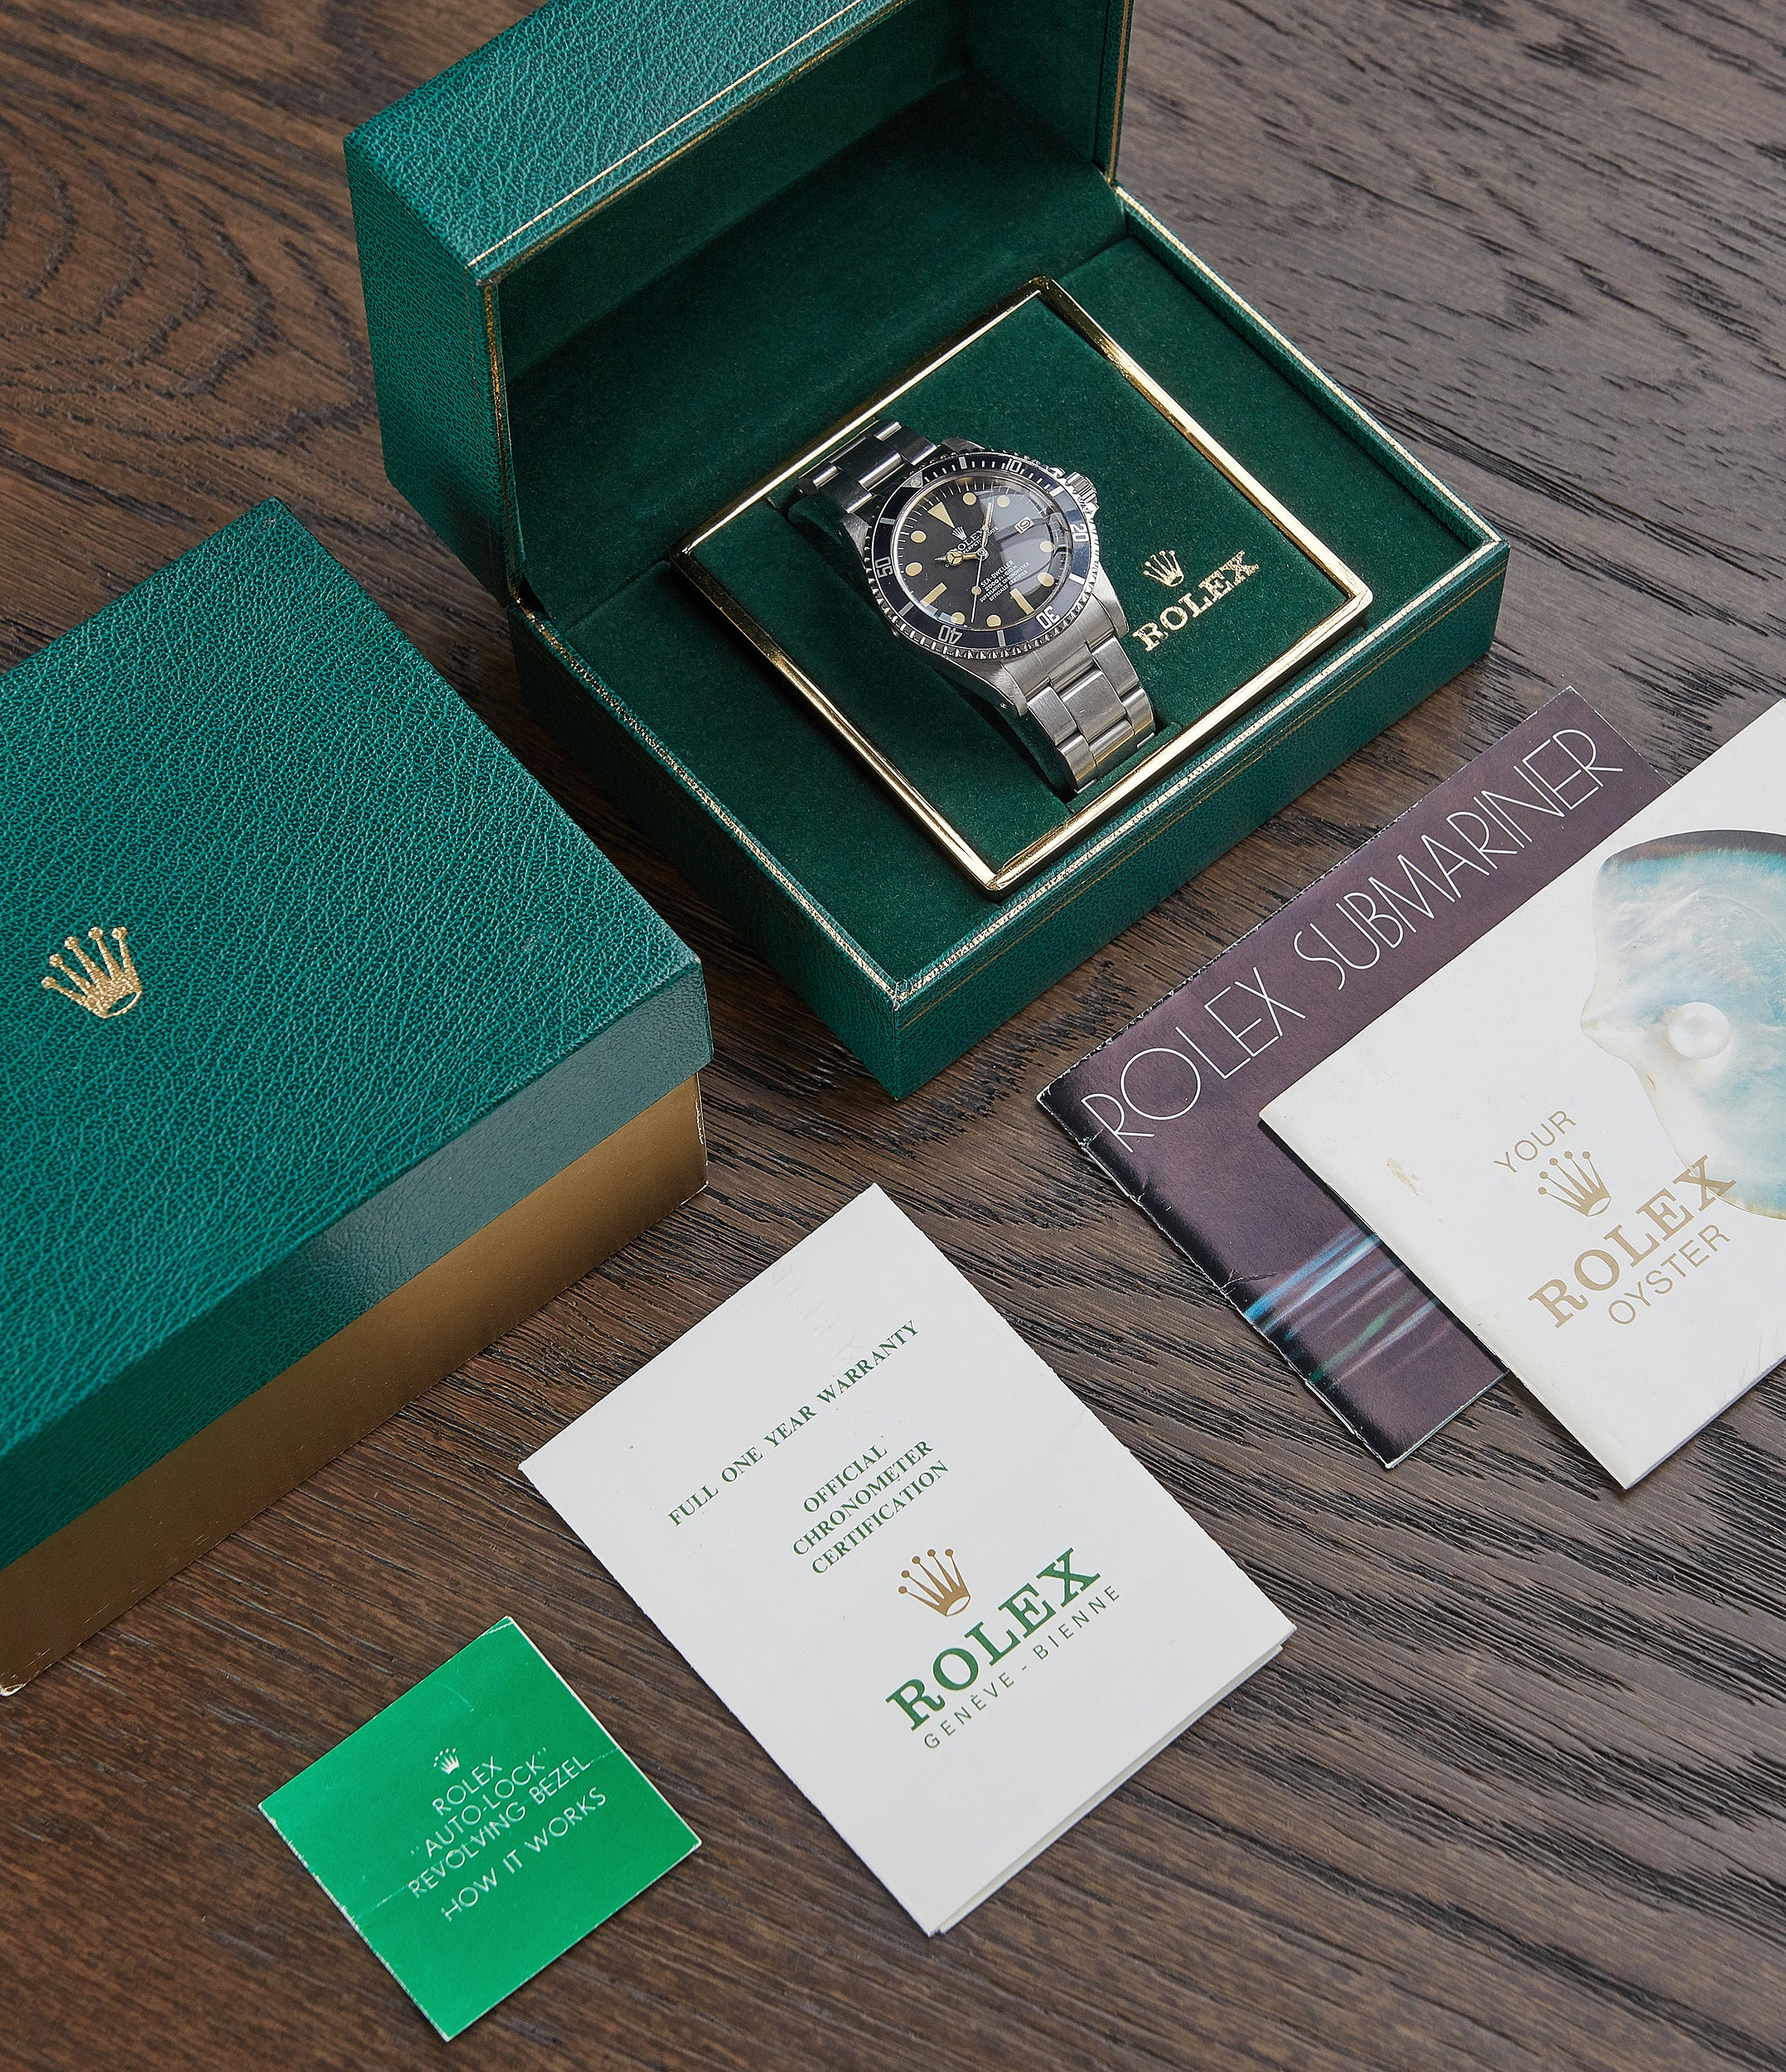 original box Buy Rolex Sea-Dweller Great White 1665 A Collected Man